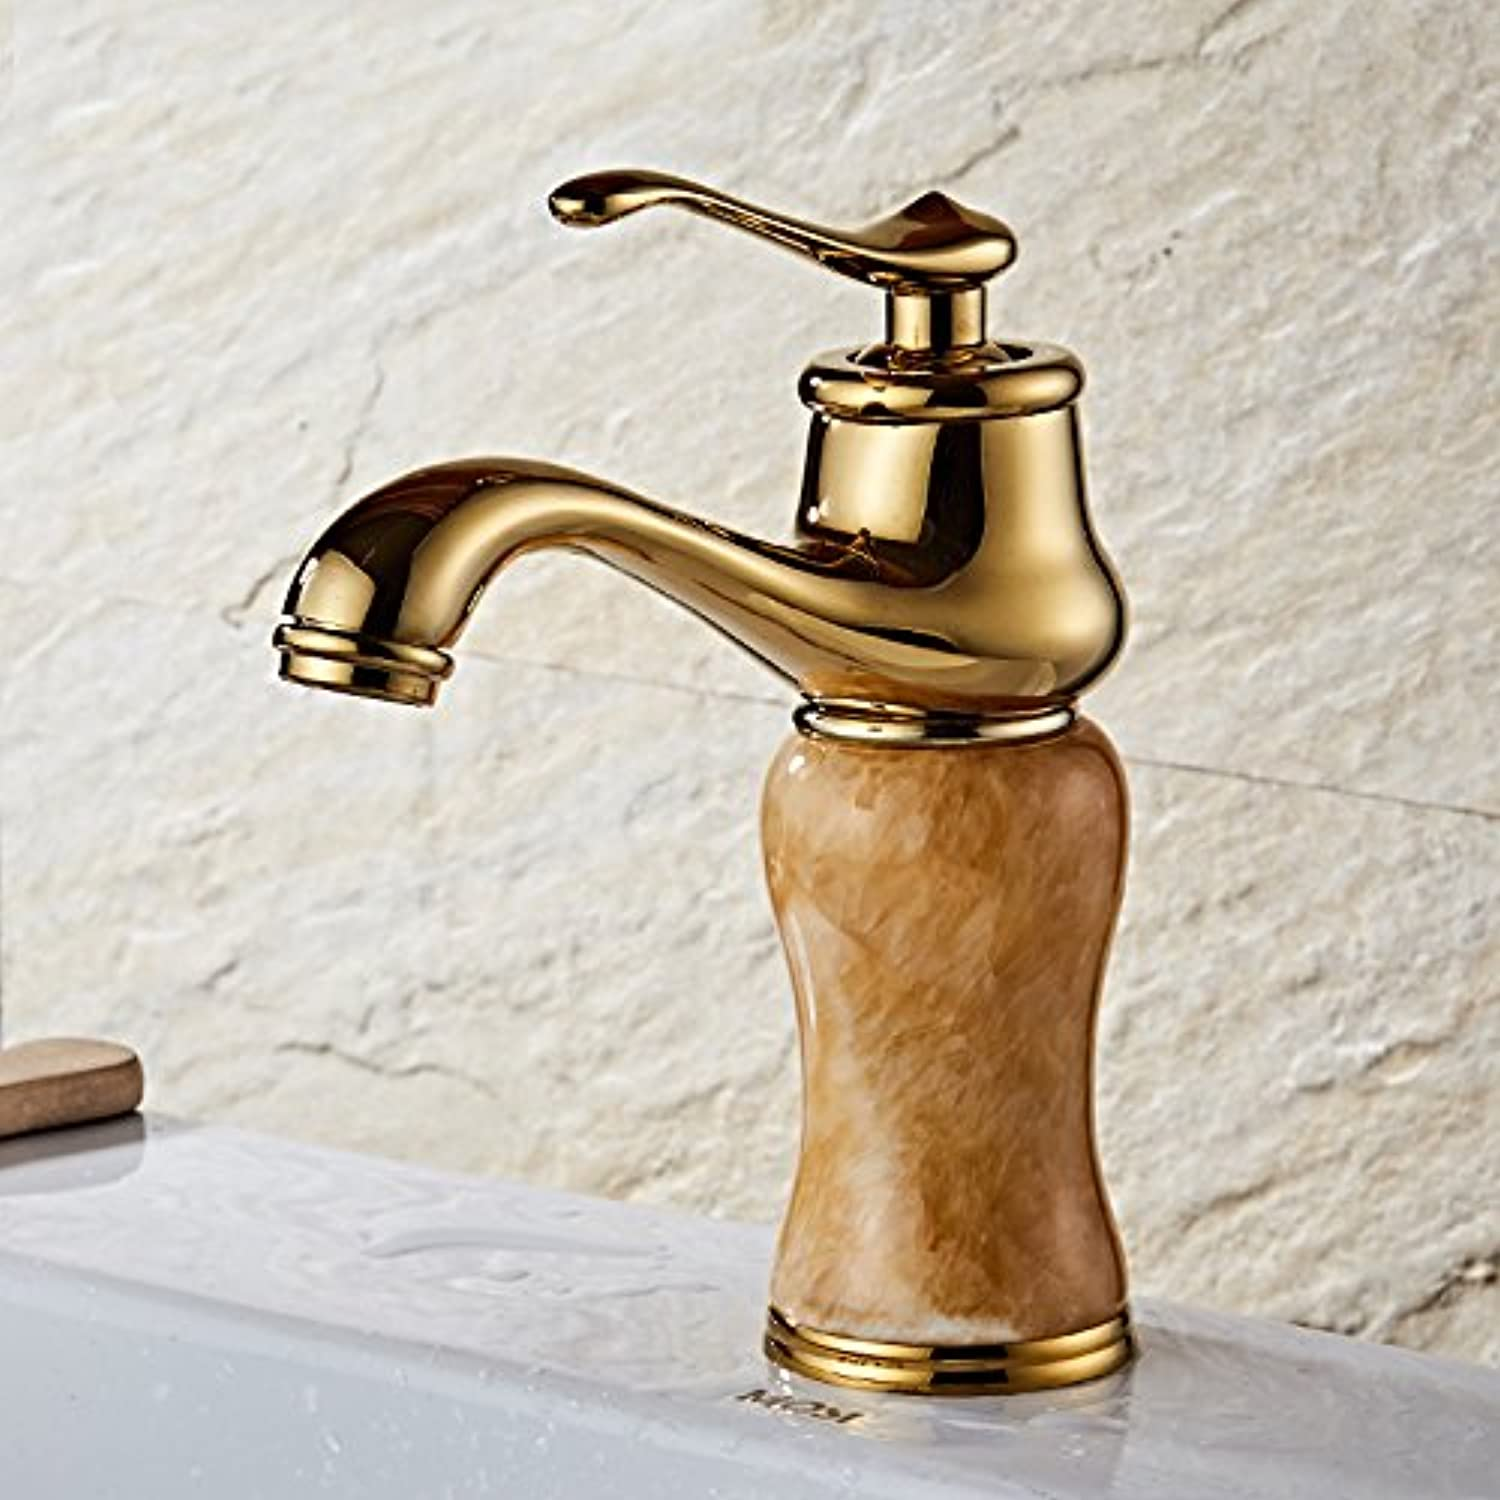 Makej European Type Copper Cold Hot Water Faucet taps Yellow